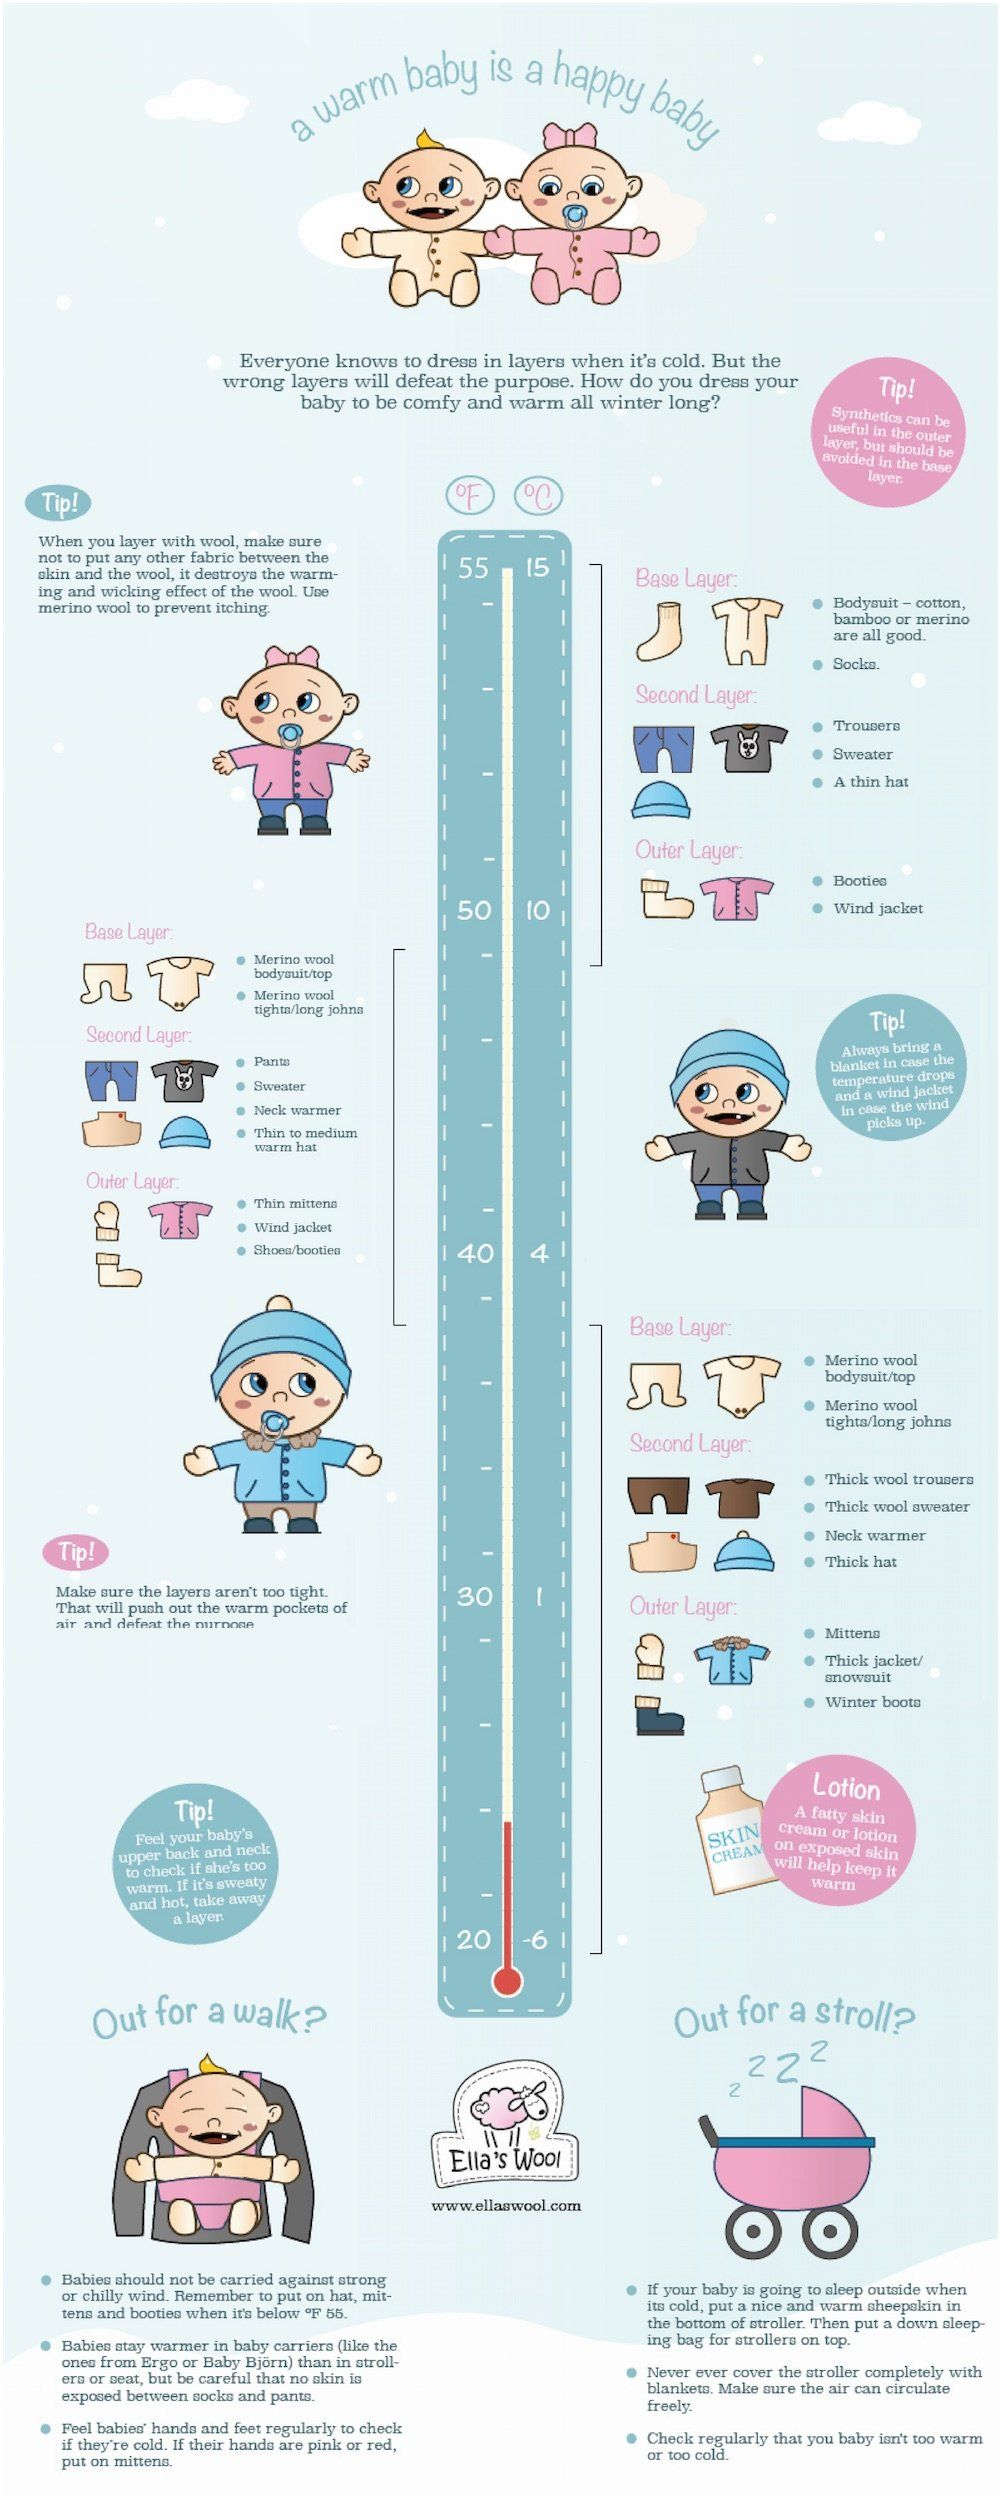 10++ What temperature is considered cold weather information